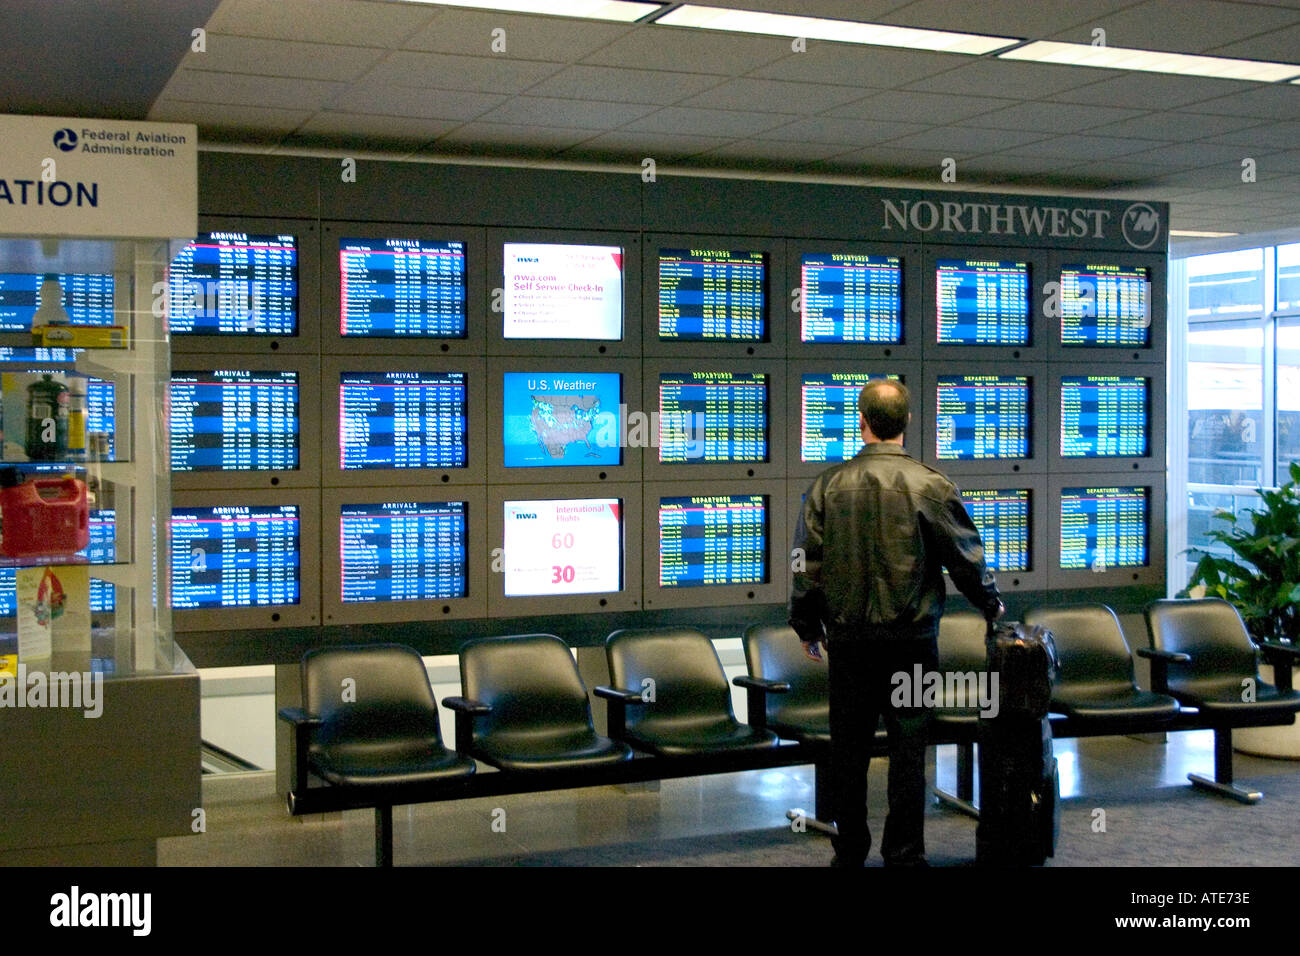 Bank of passenger departure and arrival screens at the Minneapolis-St. Paul International Airport. Minneapolis Minnesota MN USA - Stock Image